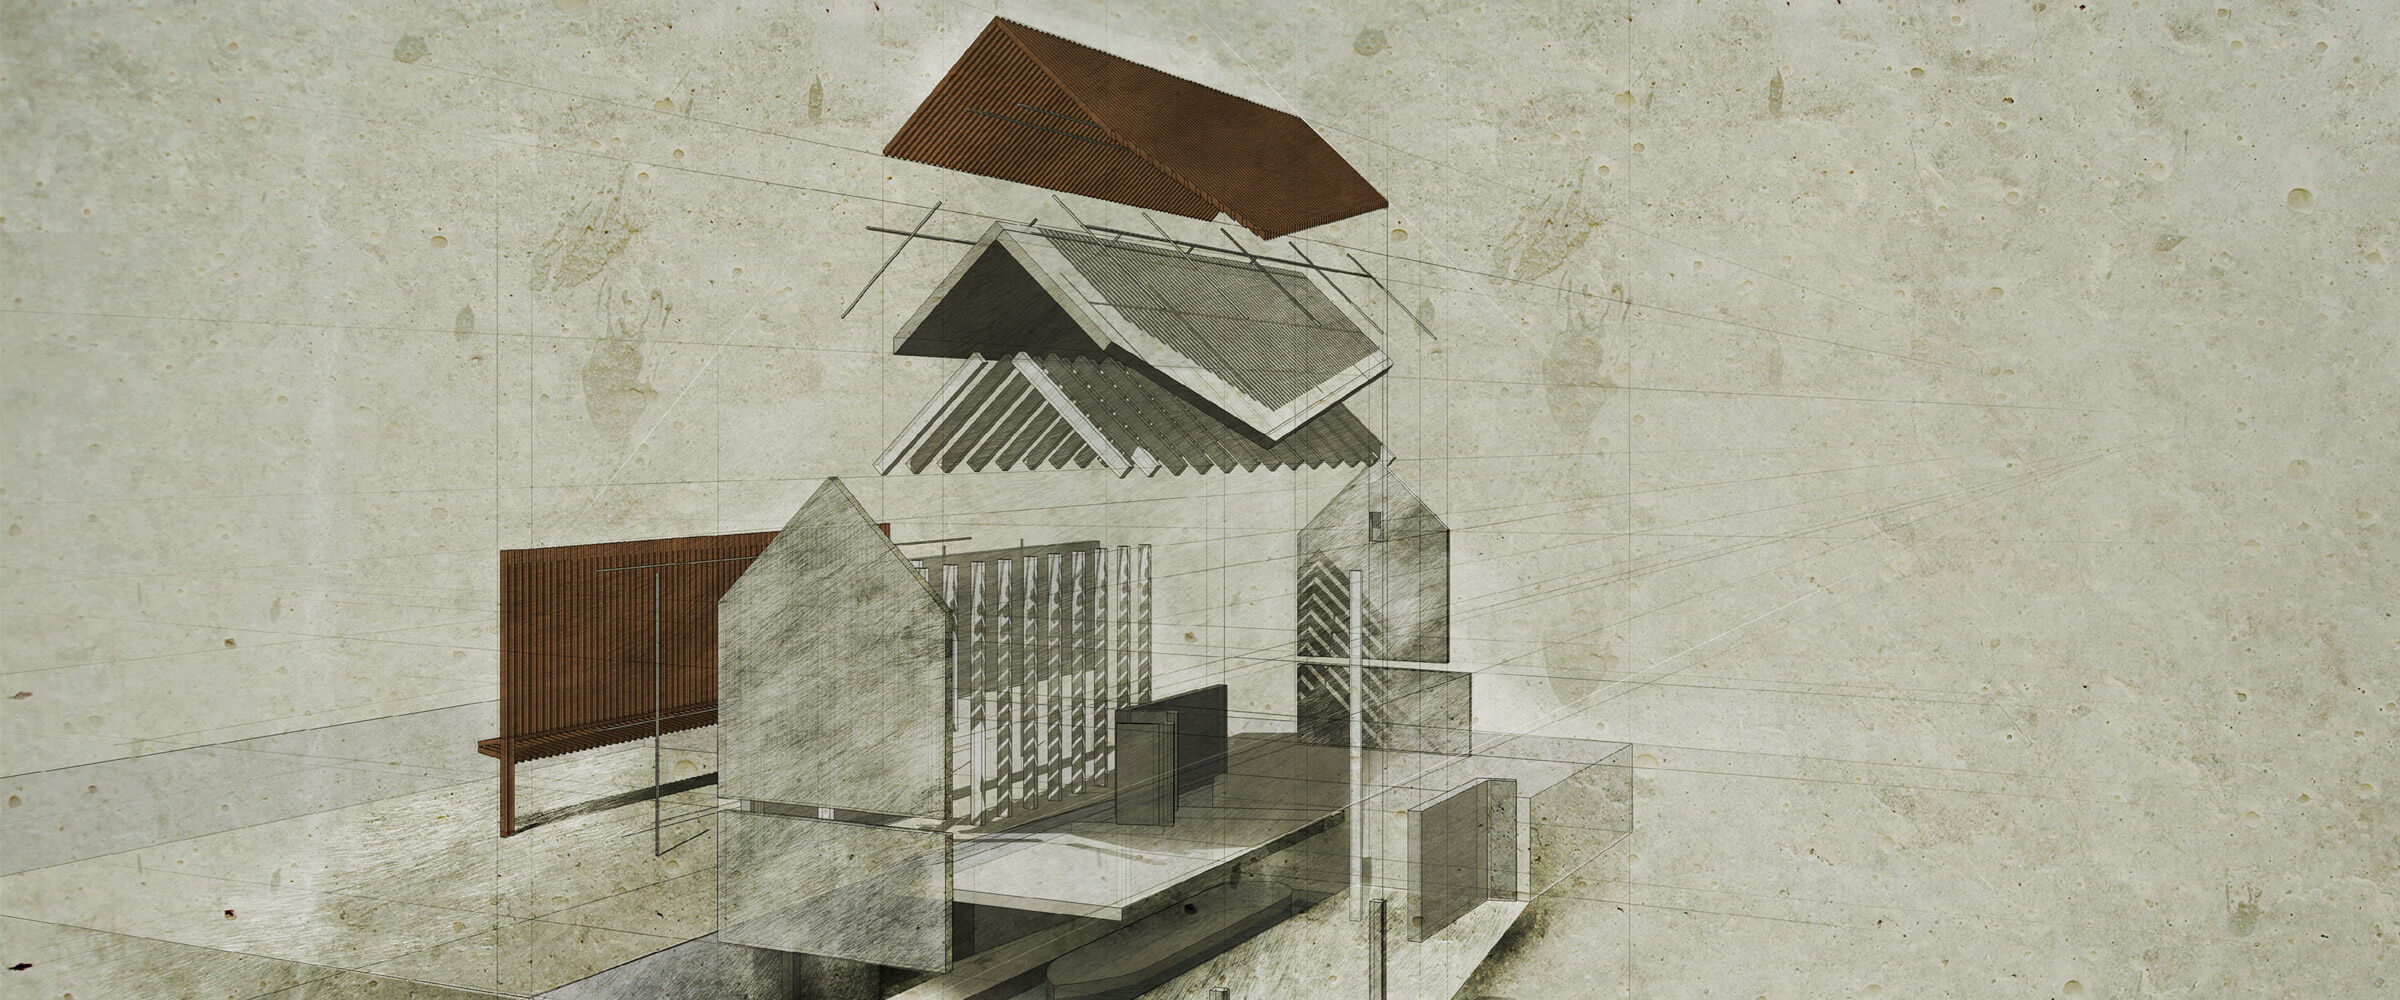 Making architecture books (and opening doors) with London-based architect Terry Jackson